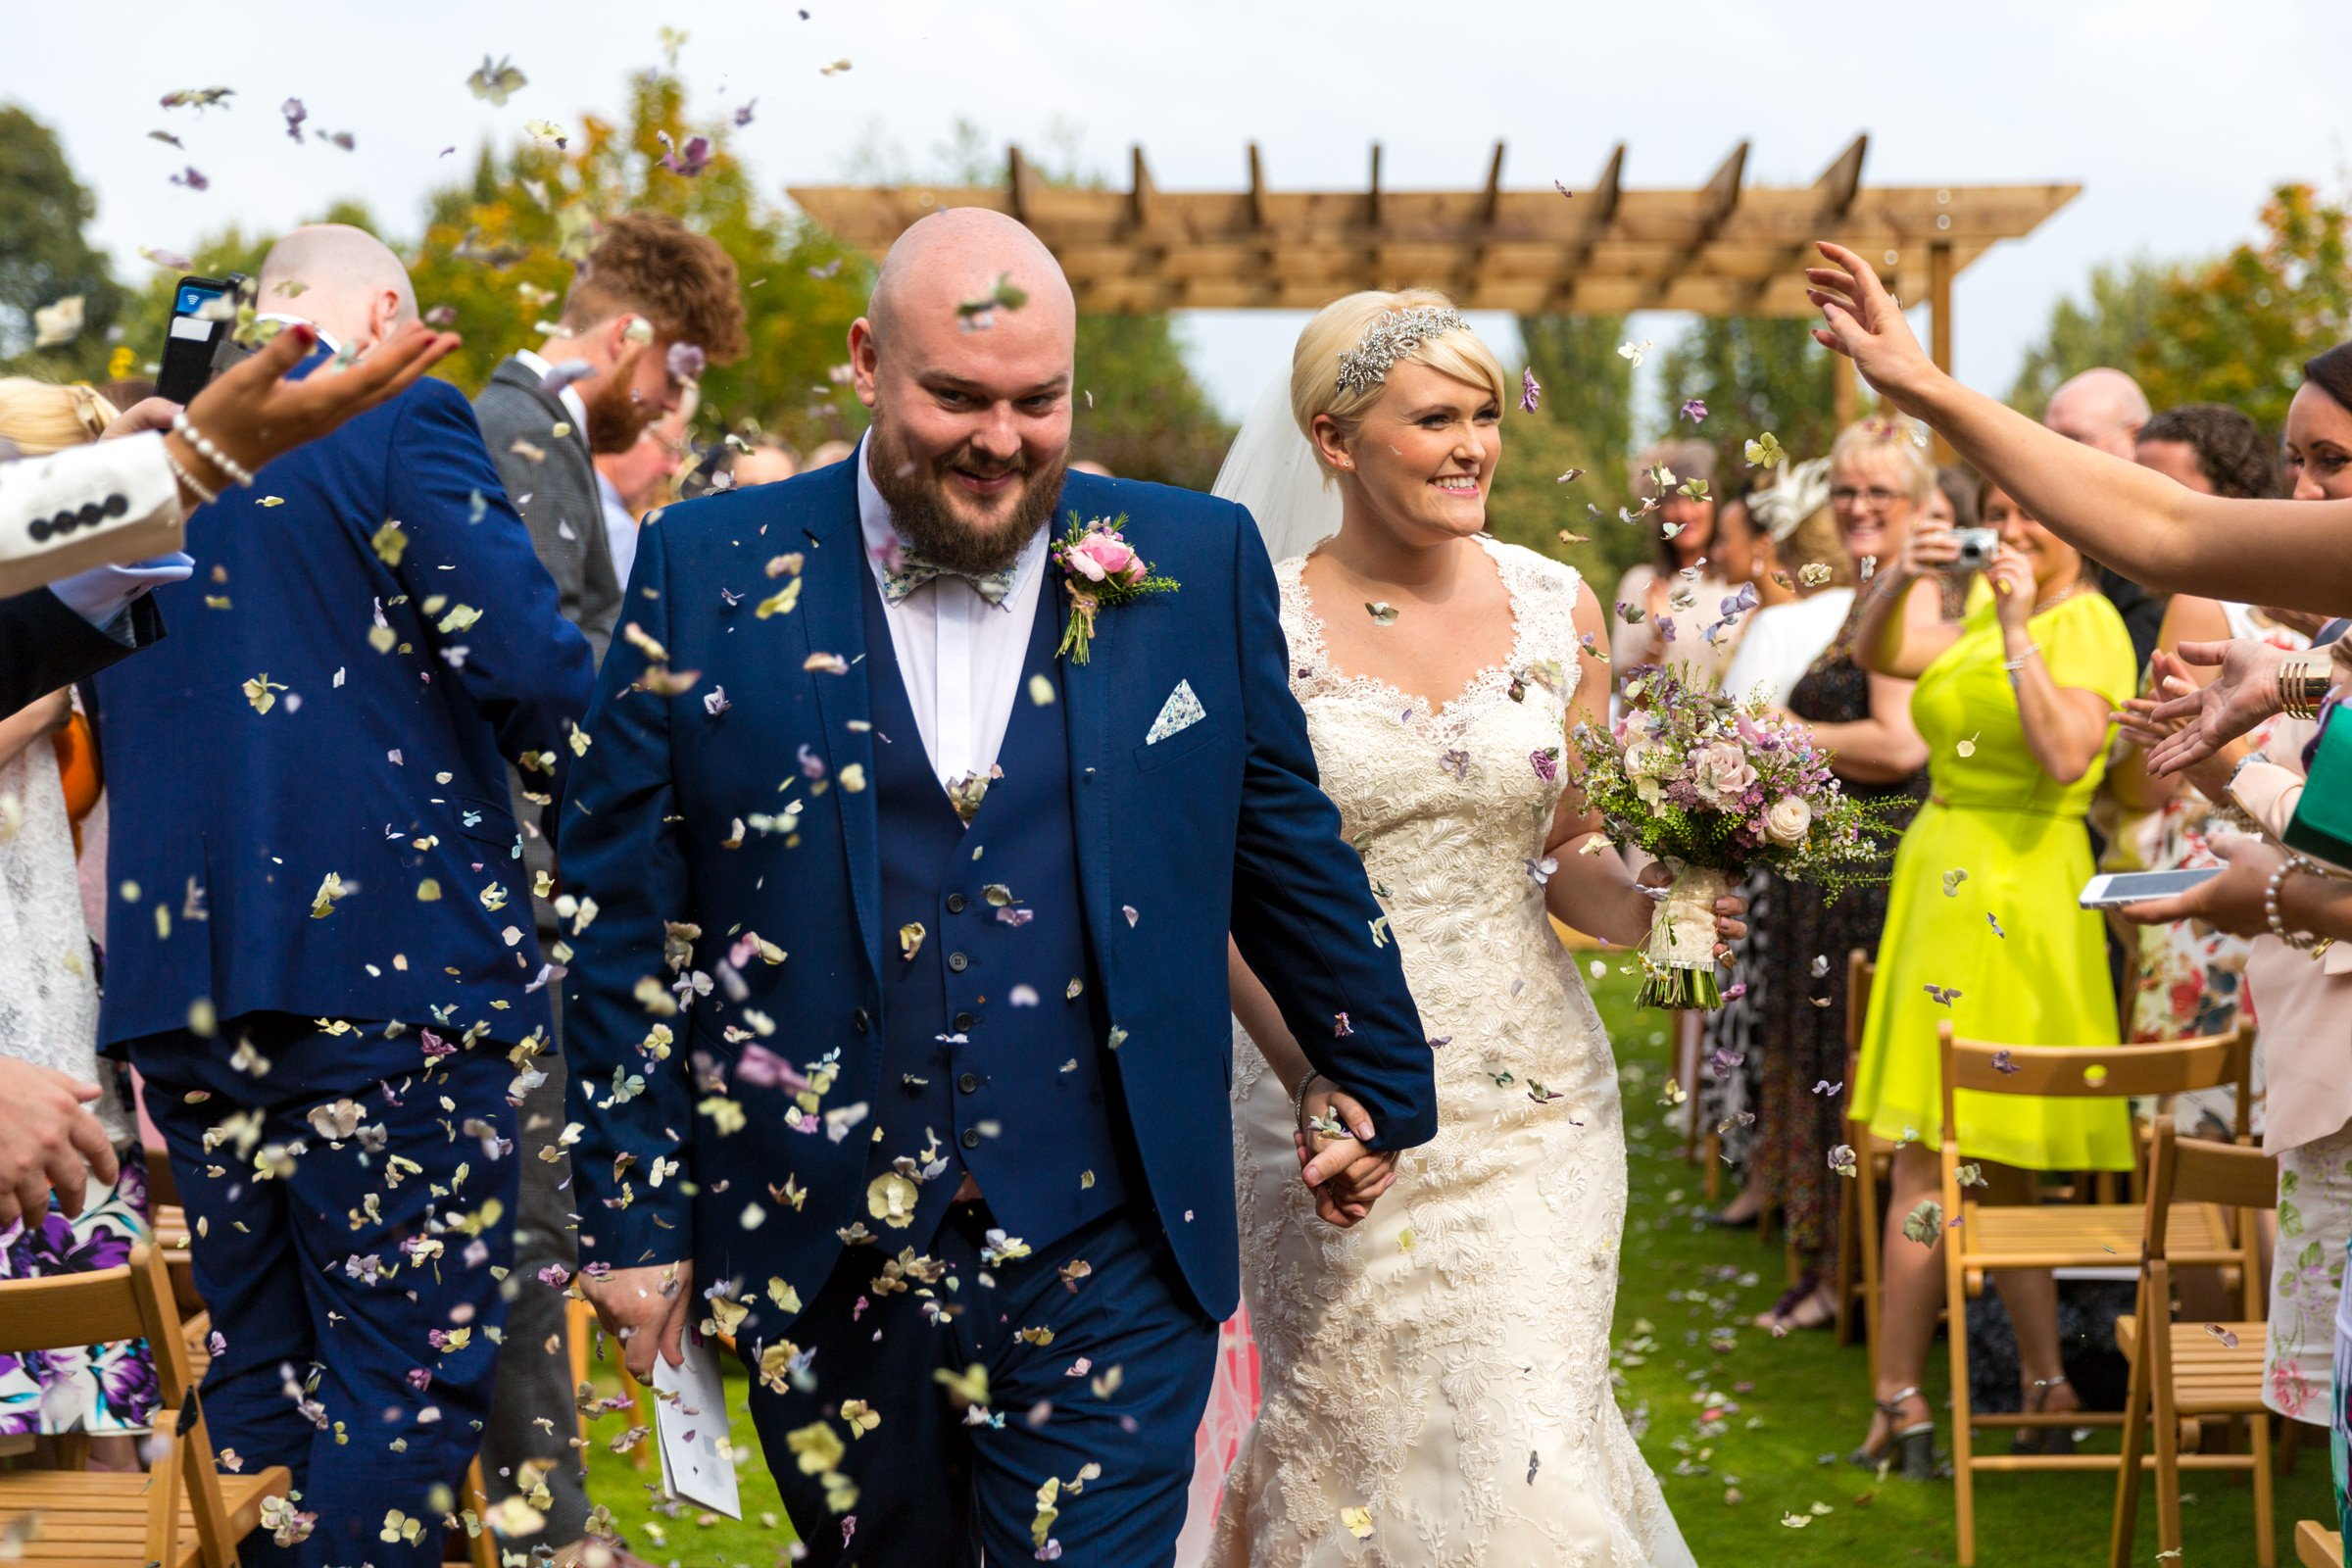 Colourful confetti wedding photo